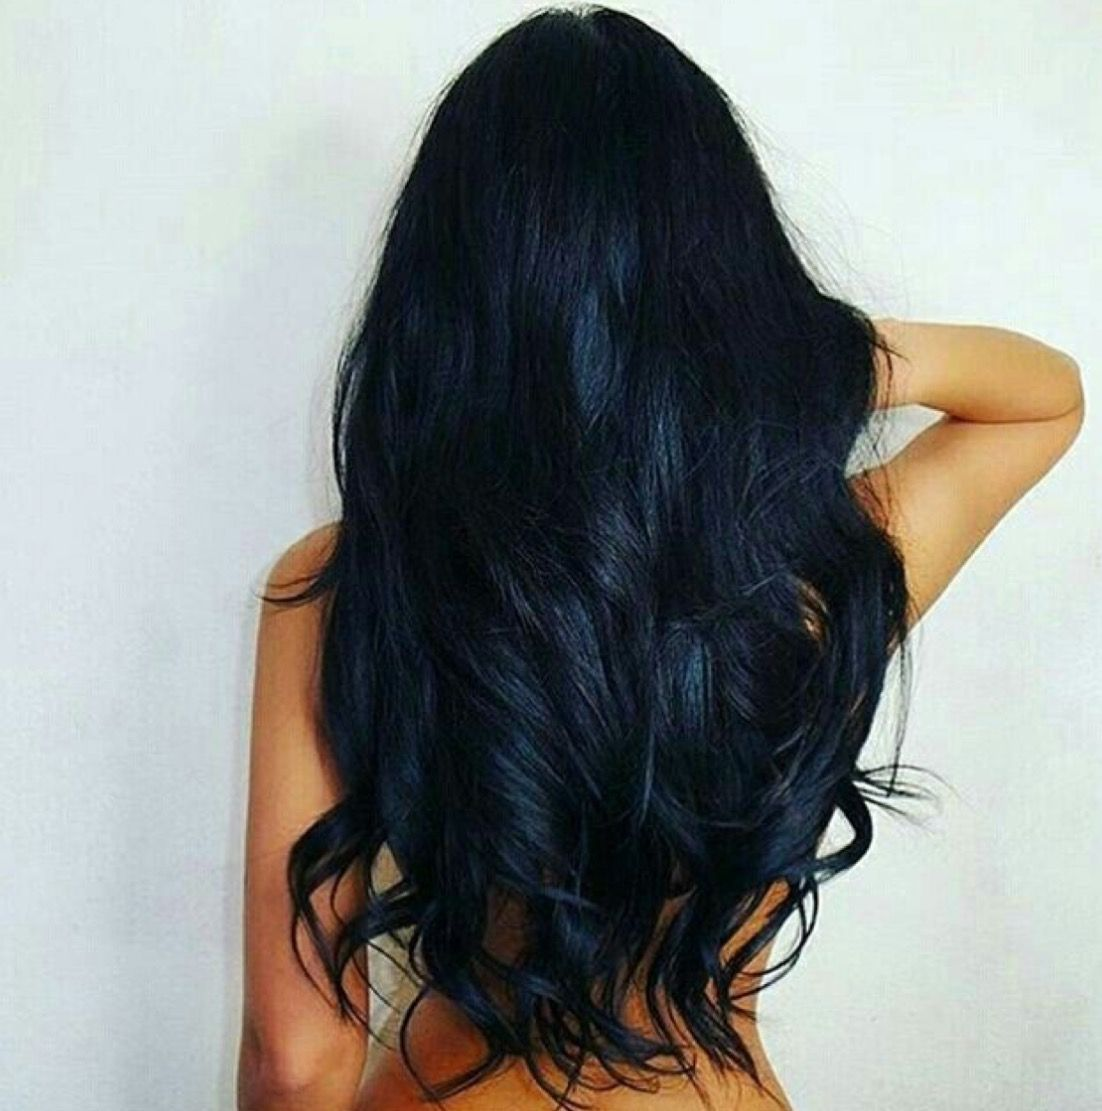 Blue Black All Over Color On Long Wavy Hair Stunning Short